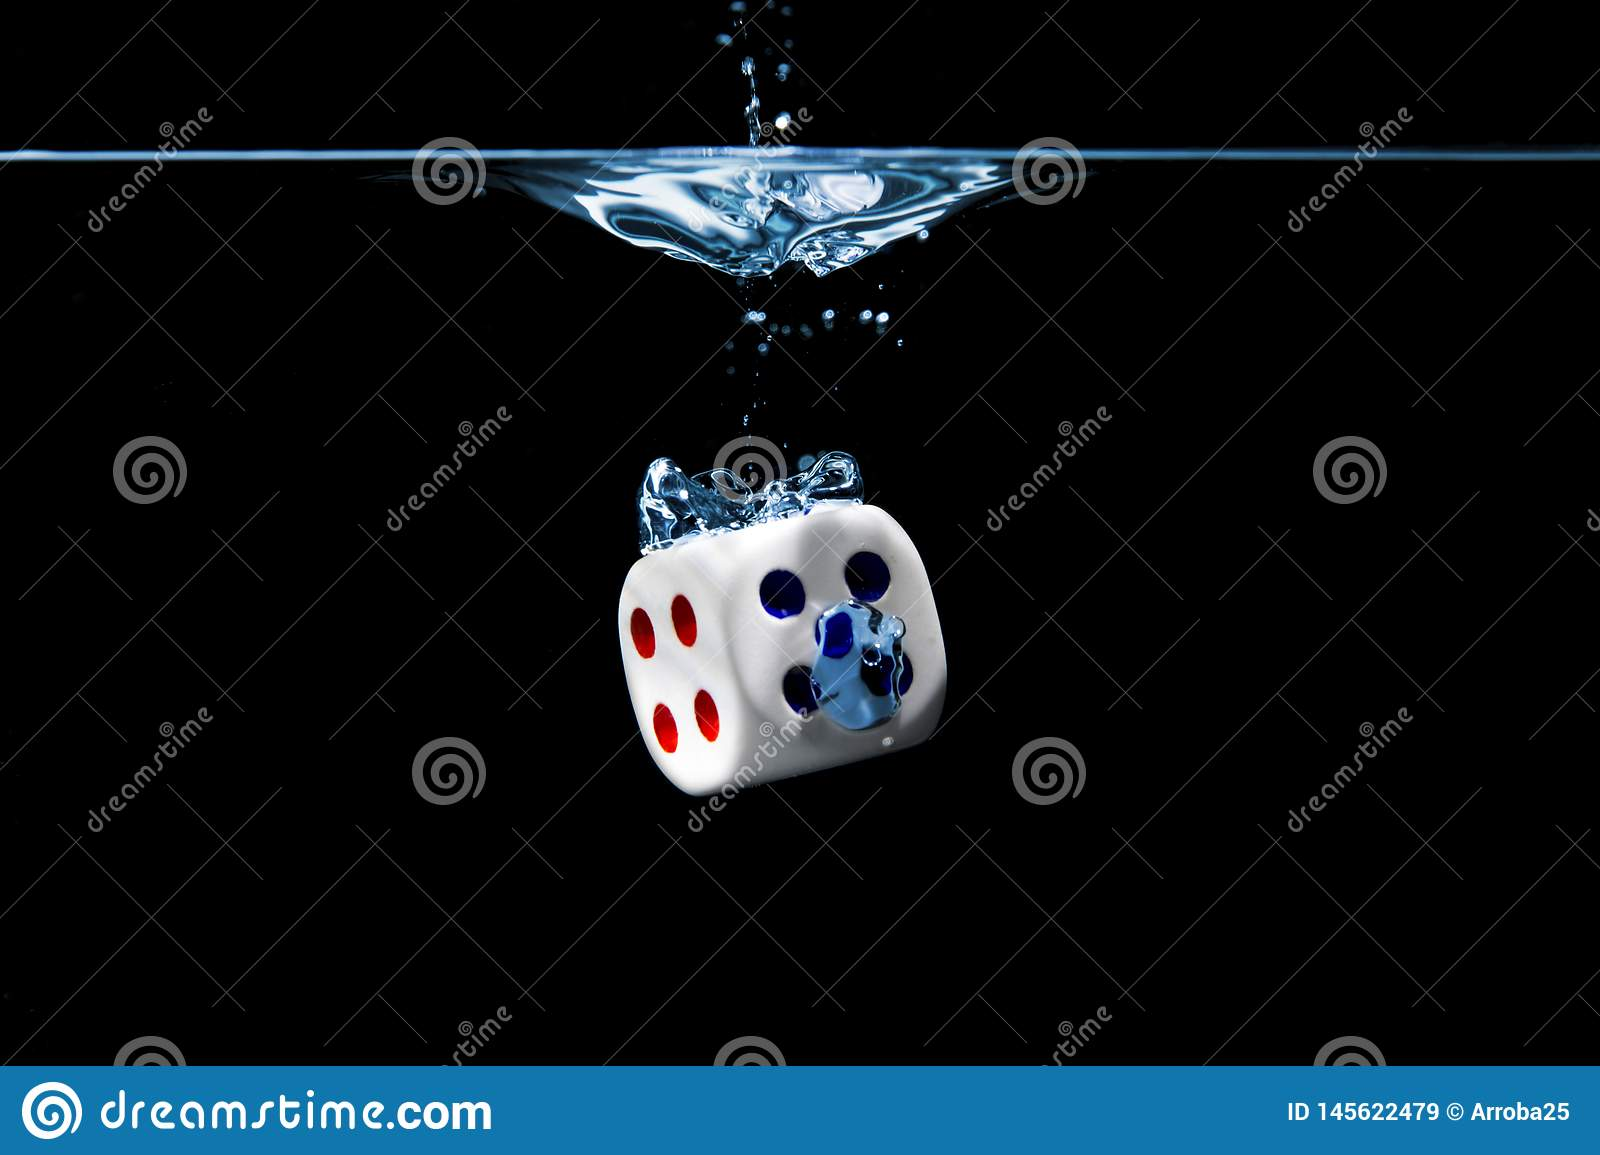 Dice with the numbers four and five faces in the water with black background